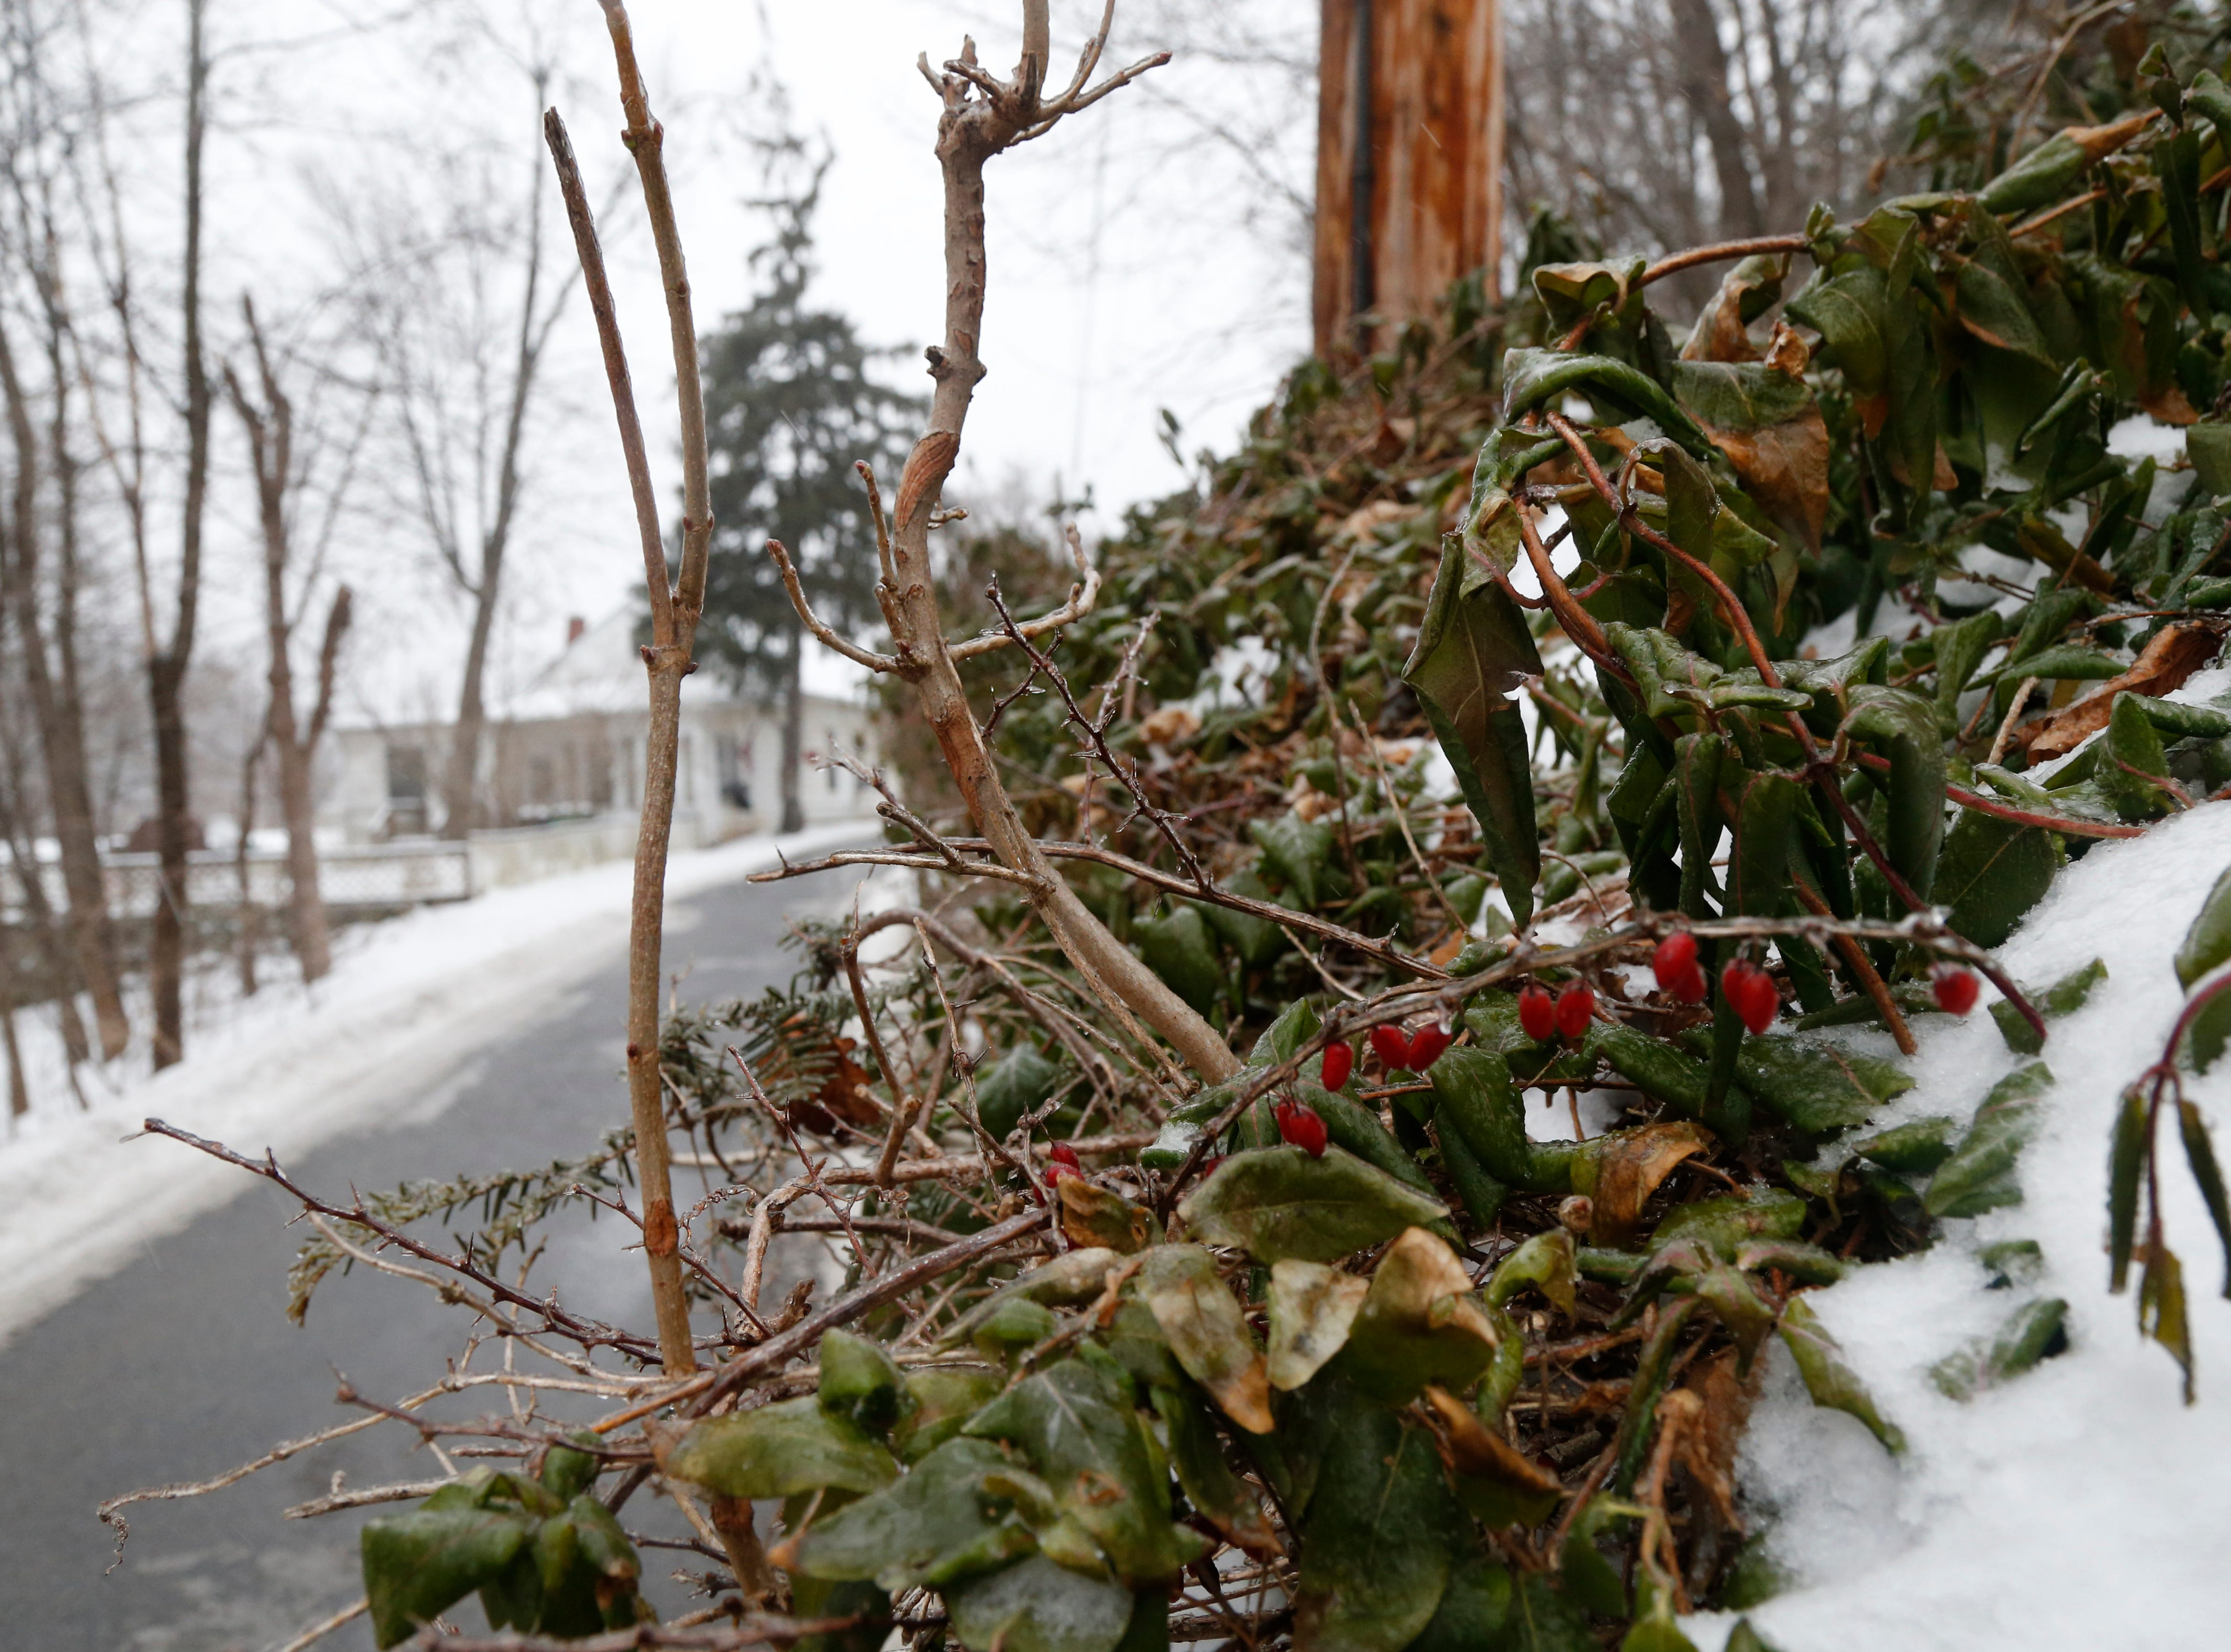 Some greenery along Reservoir Place as freezing rain falls in the Village of Wappingers Falls on January 20, 2019.